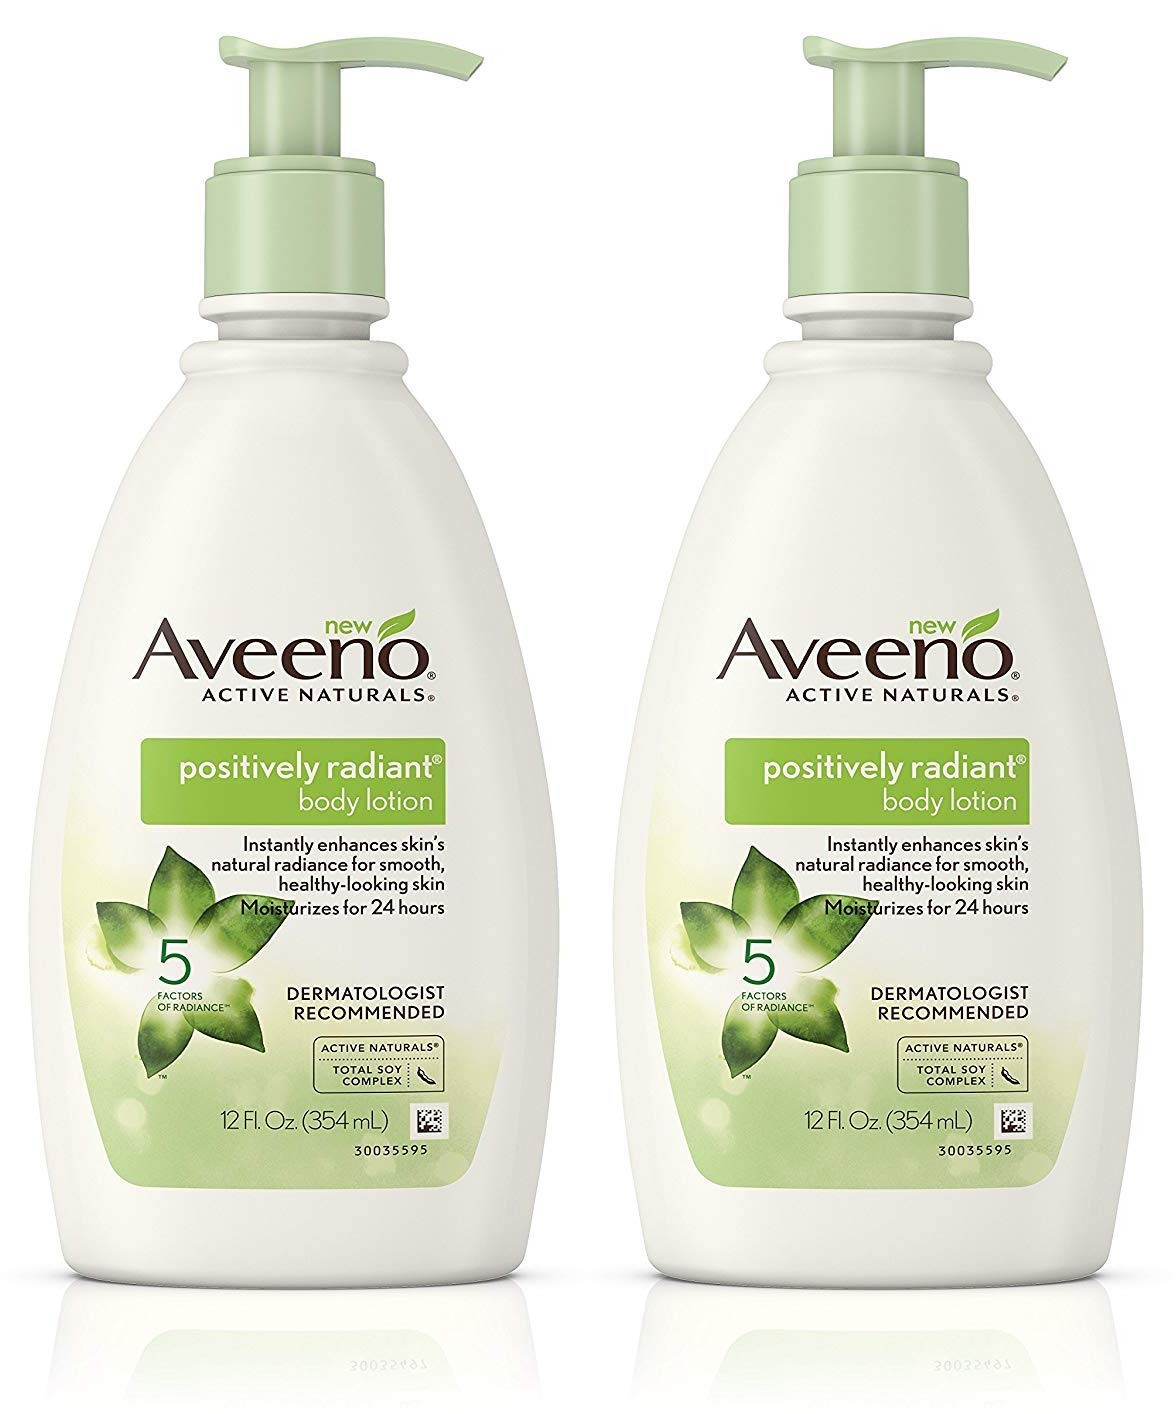 Aveeno Positively Radiant Body Lotion 12 Ounce Pump (354ml) (2 Pack)